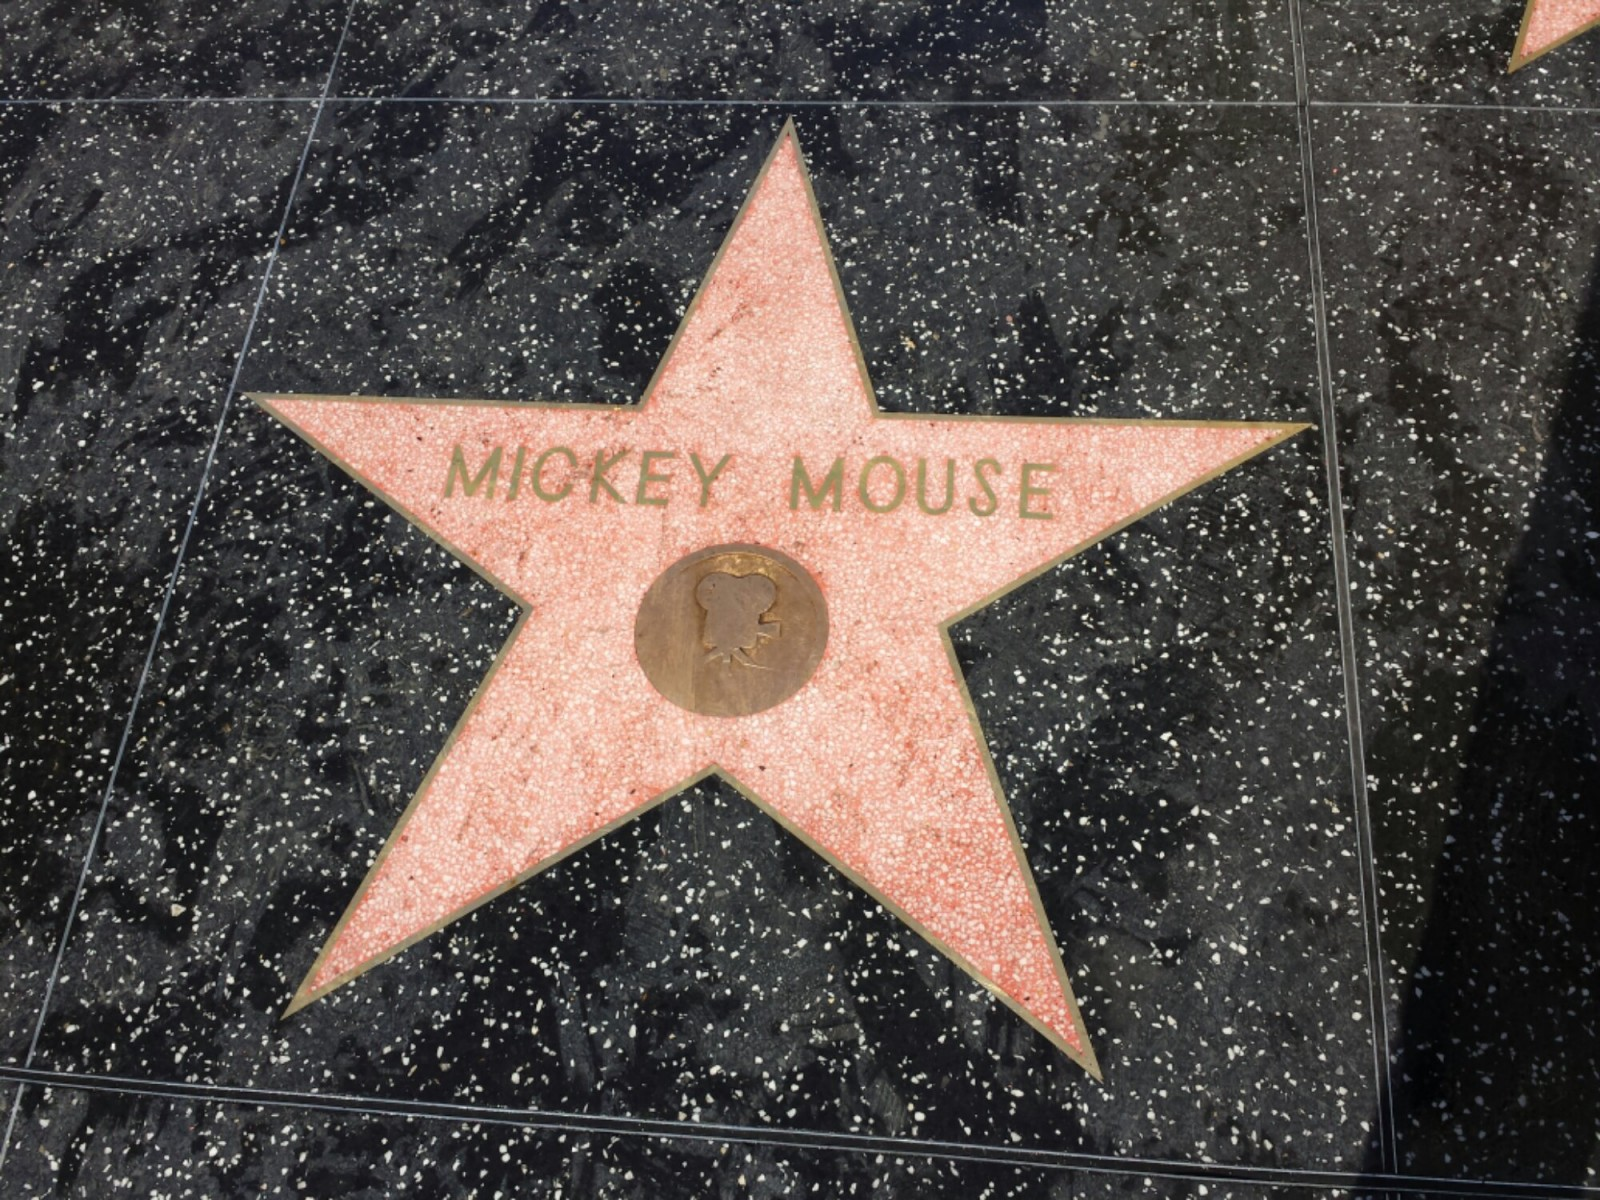 Mickey's star on Hollywood Blvd.